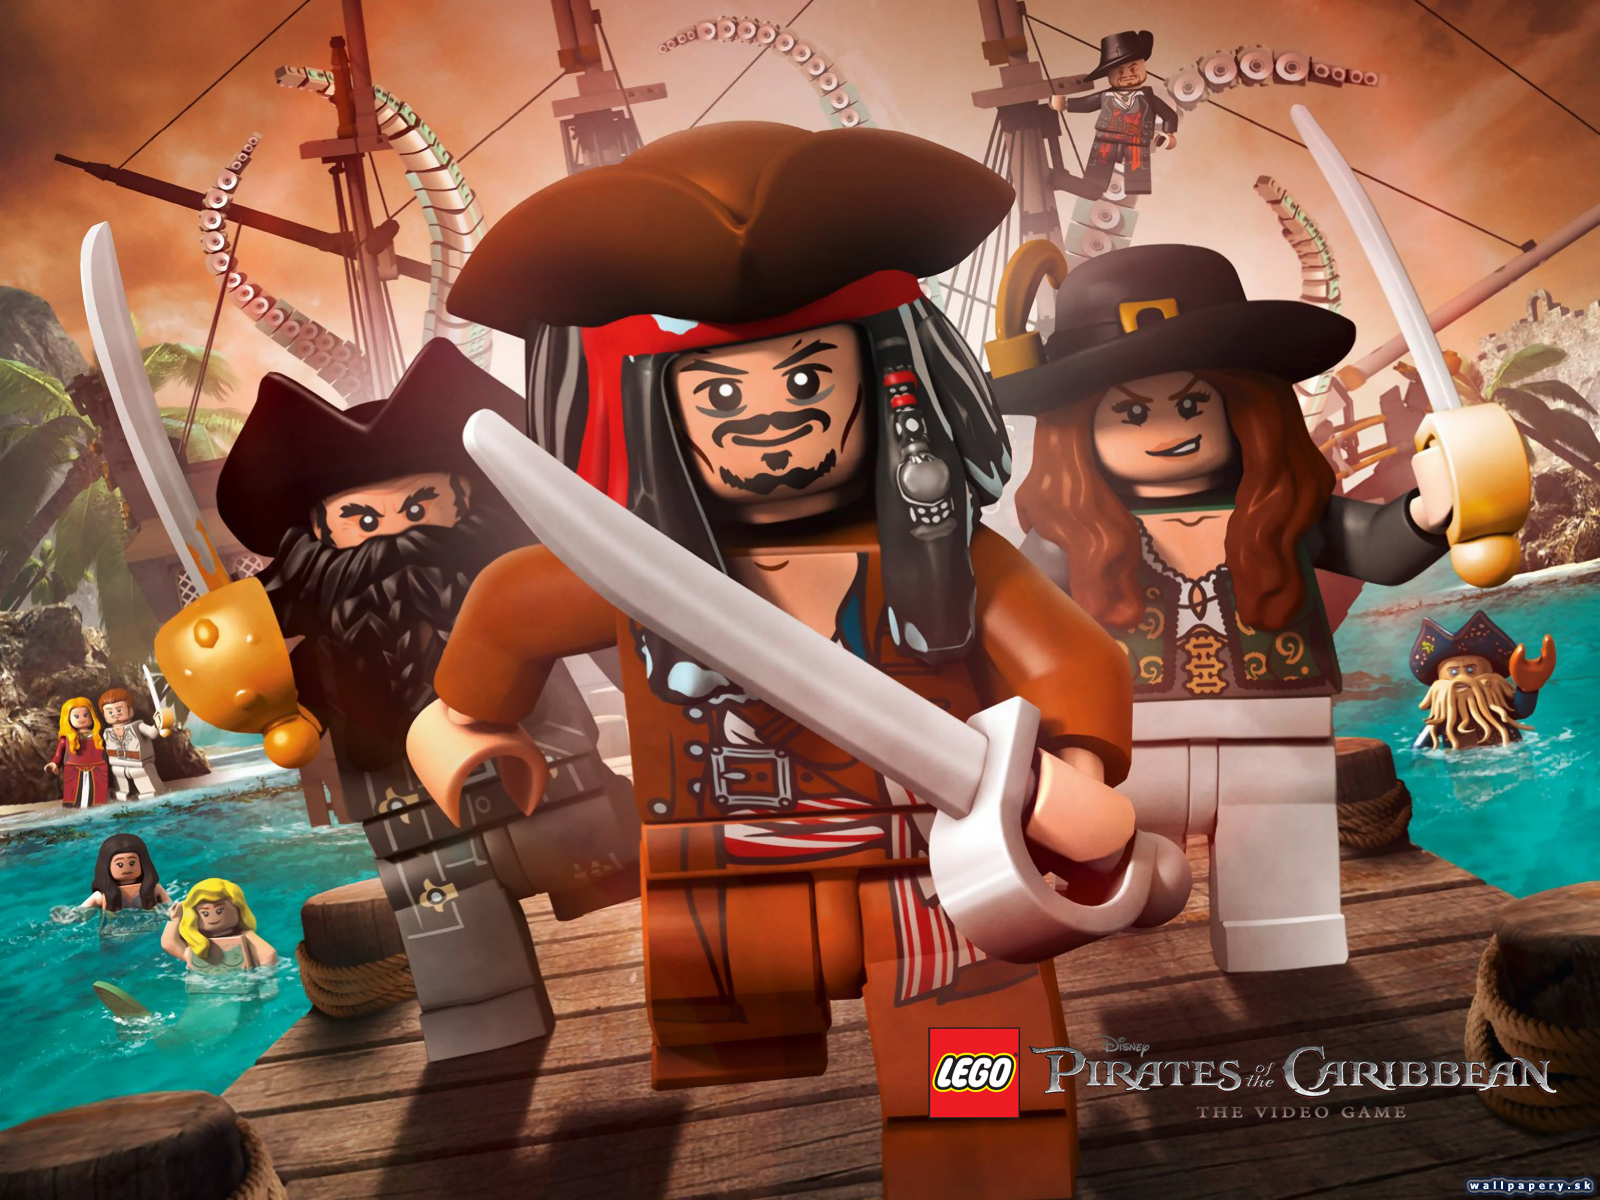 Lego Pirates of the Caribbean: The Video Game - wallpaper 1